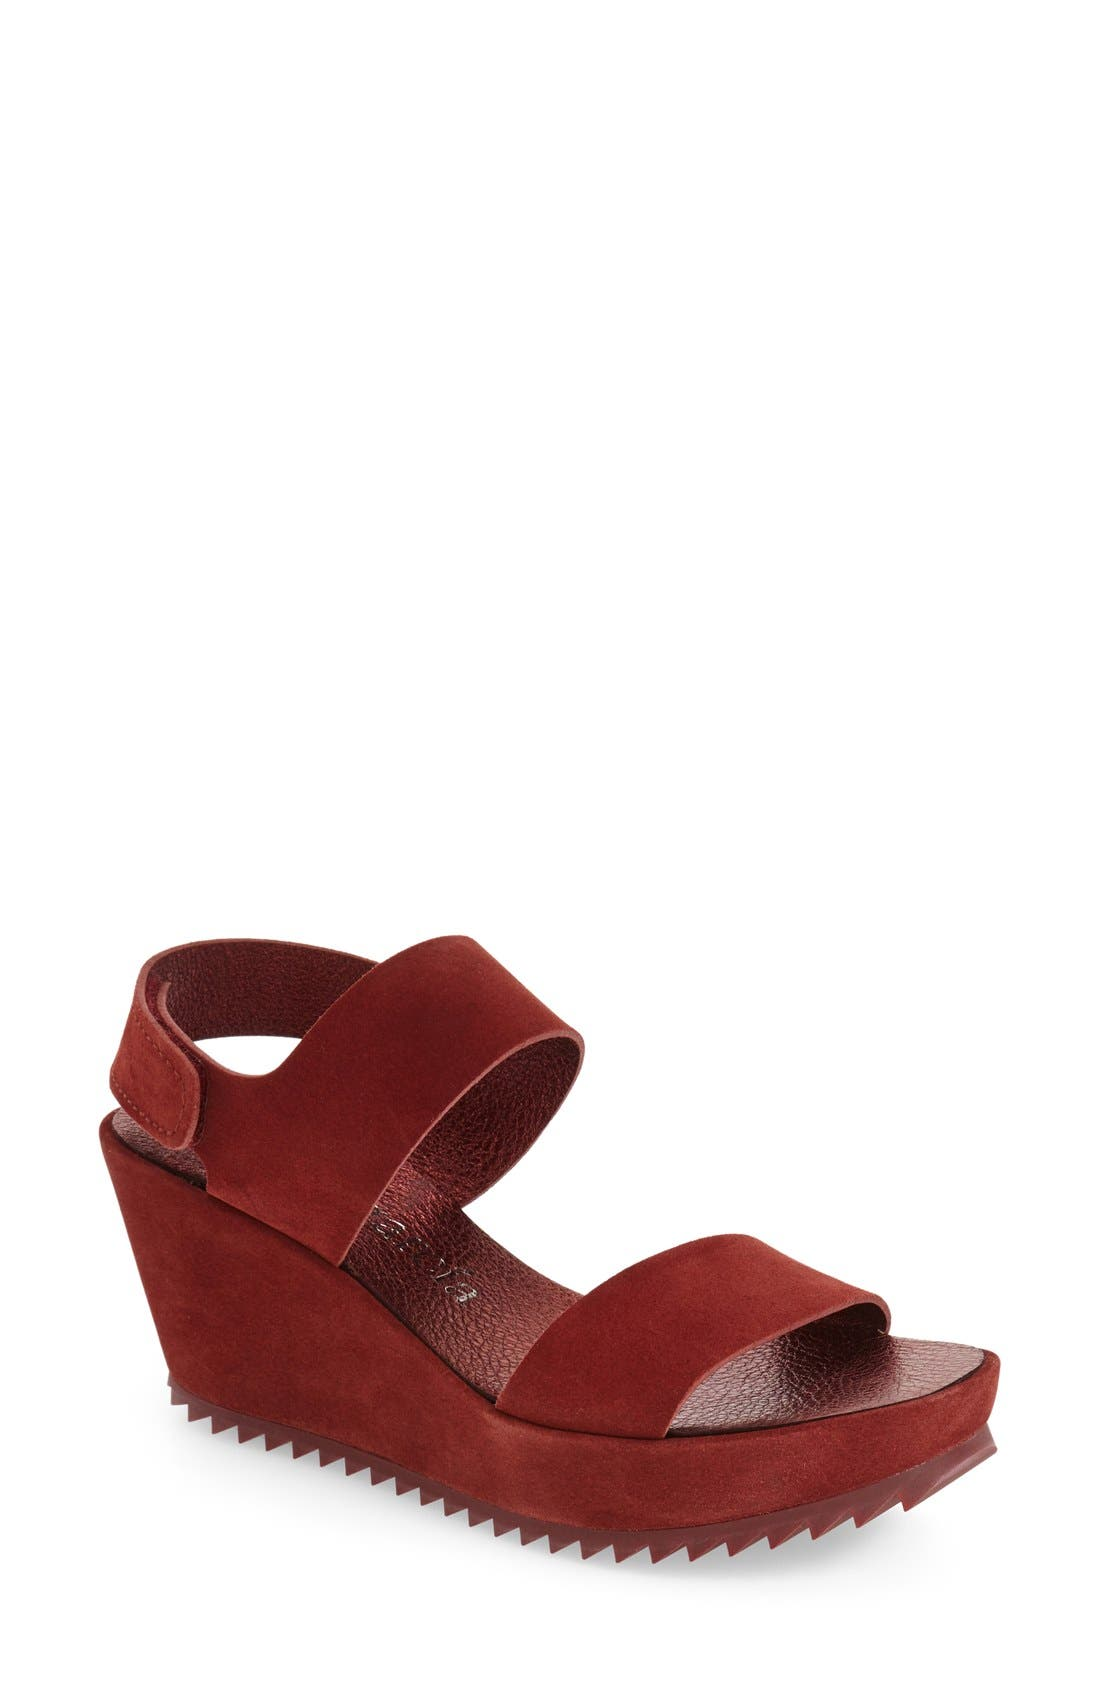 'Fiona' Wedge Sandal,                             Main thumbnail 1, color,                             Red Leather